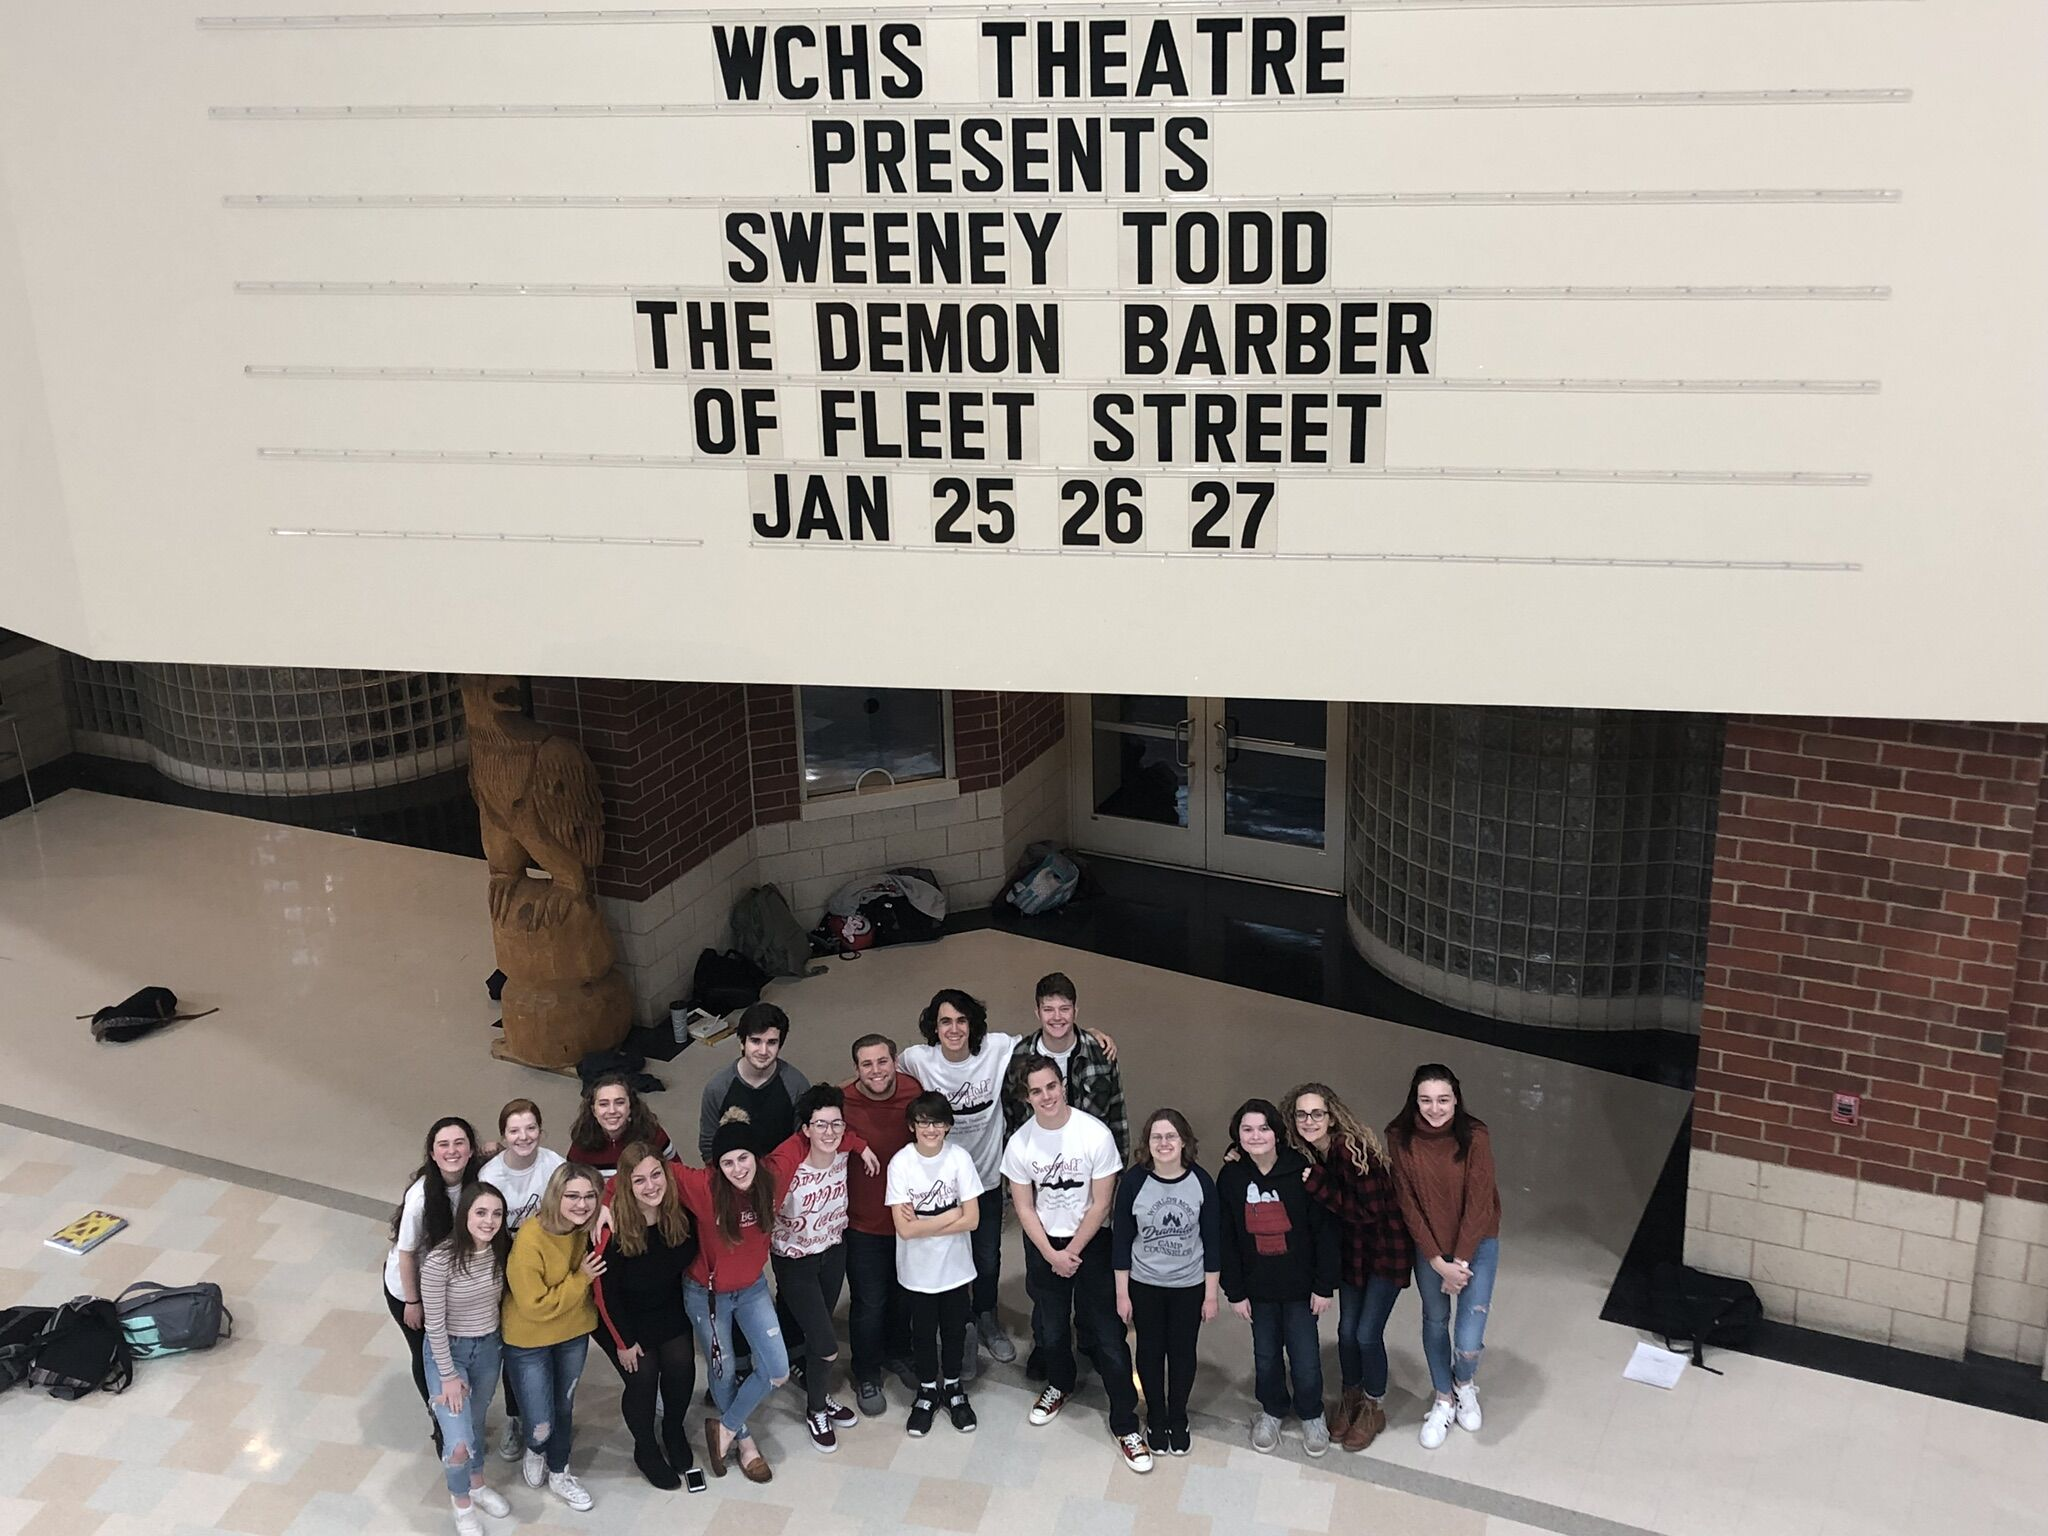 WCHS Sweeney Todd Group Shot.jpeg